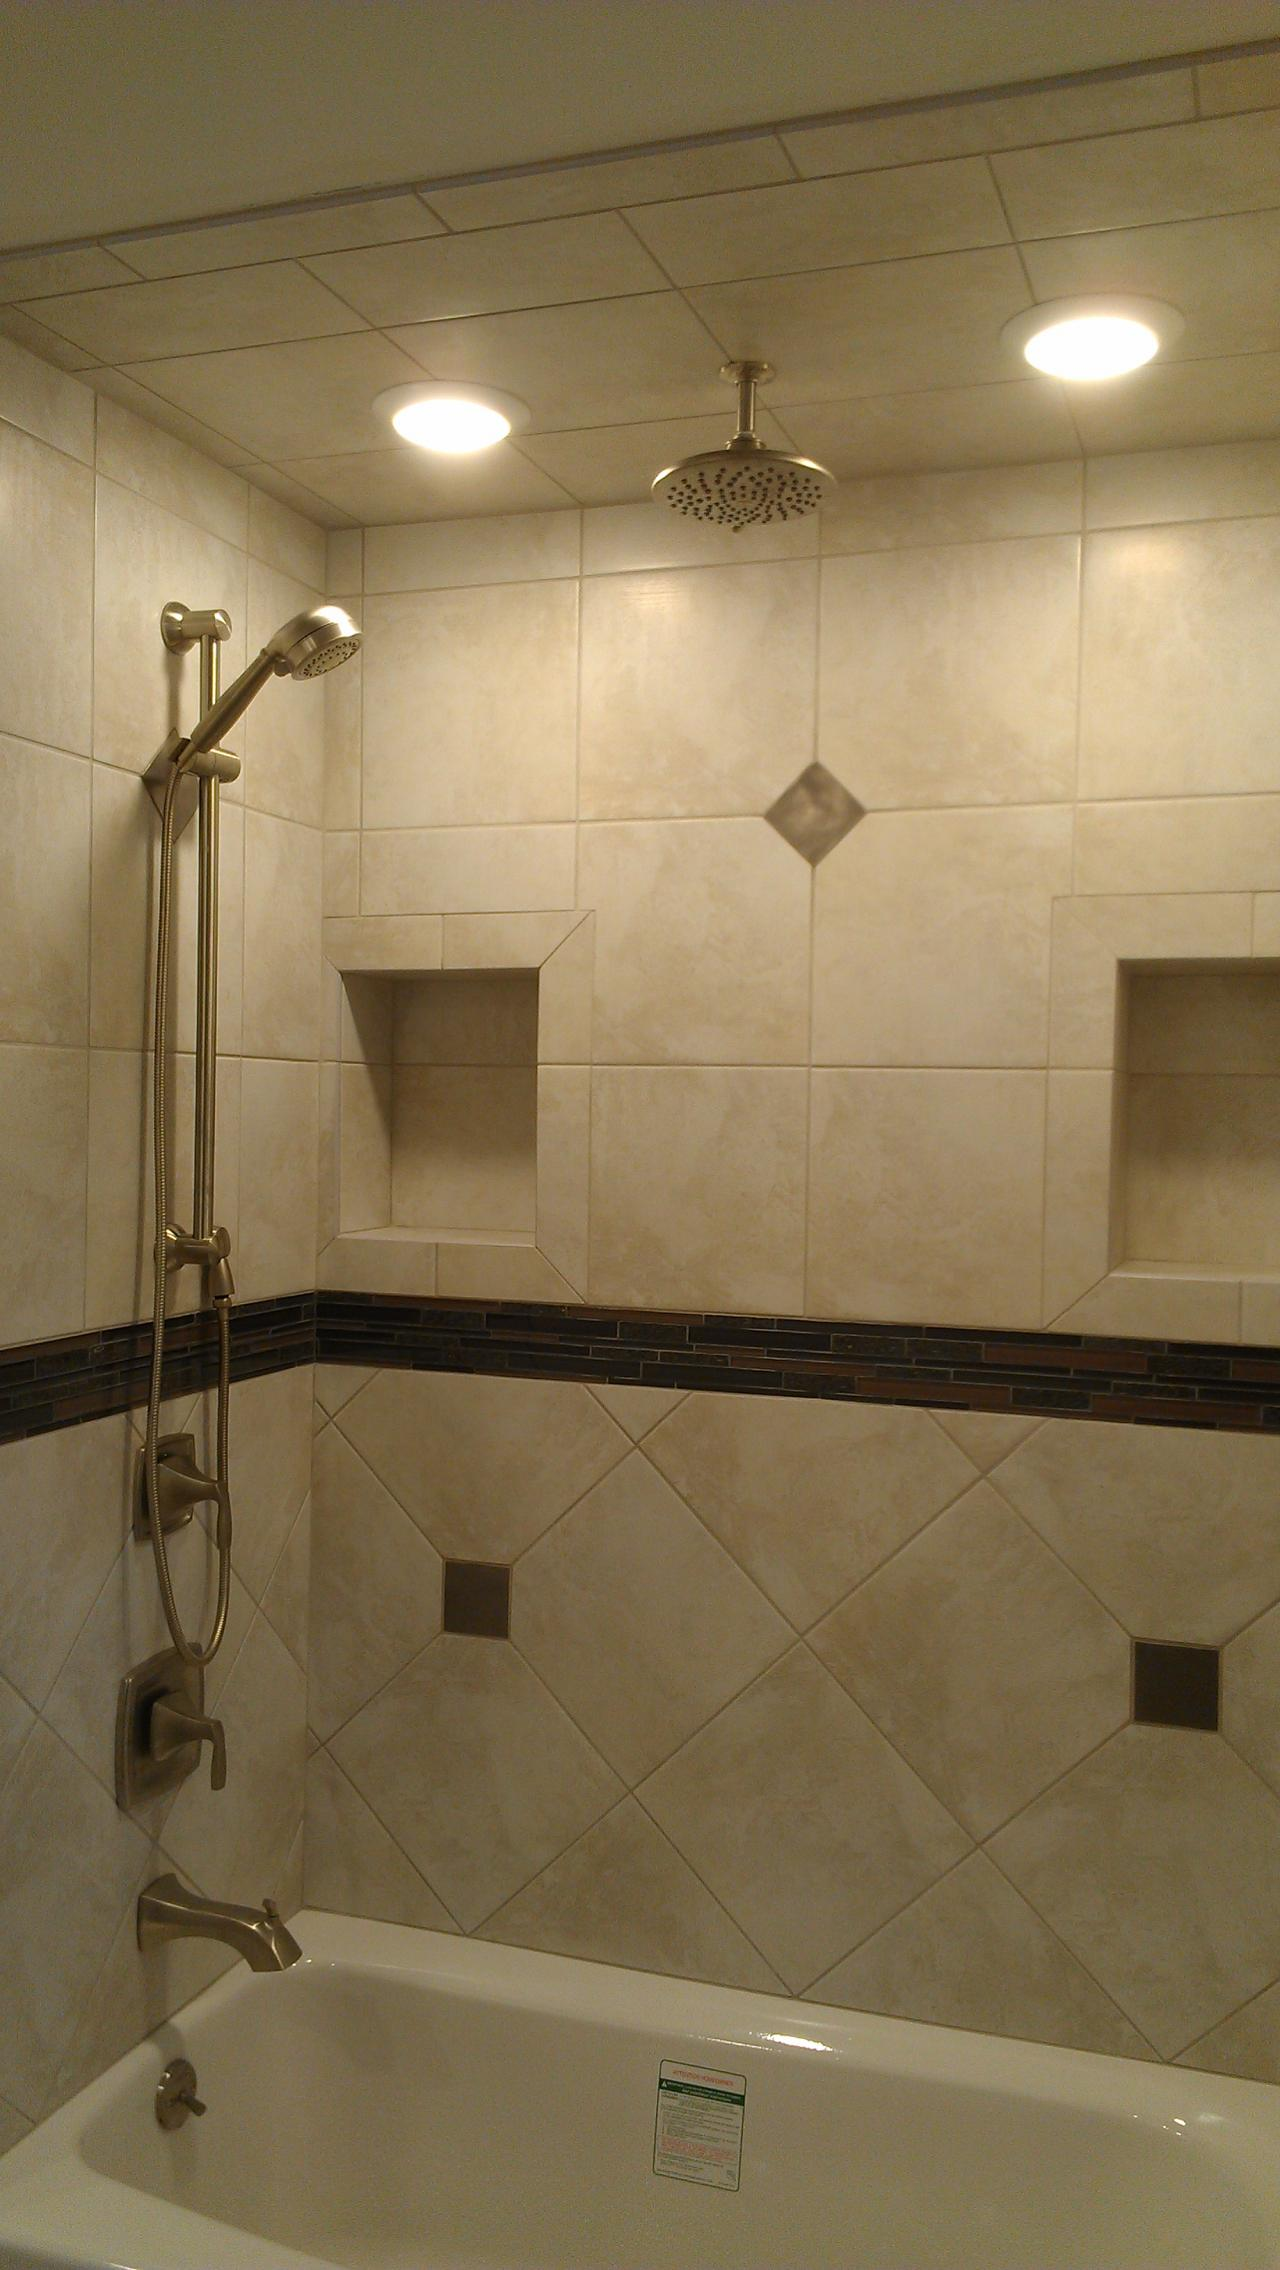 Nest Homes Construction Bathroom Make Over In Willoughby